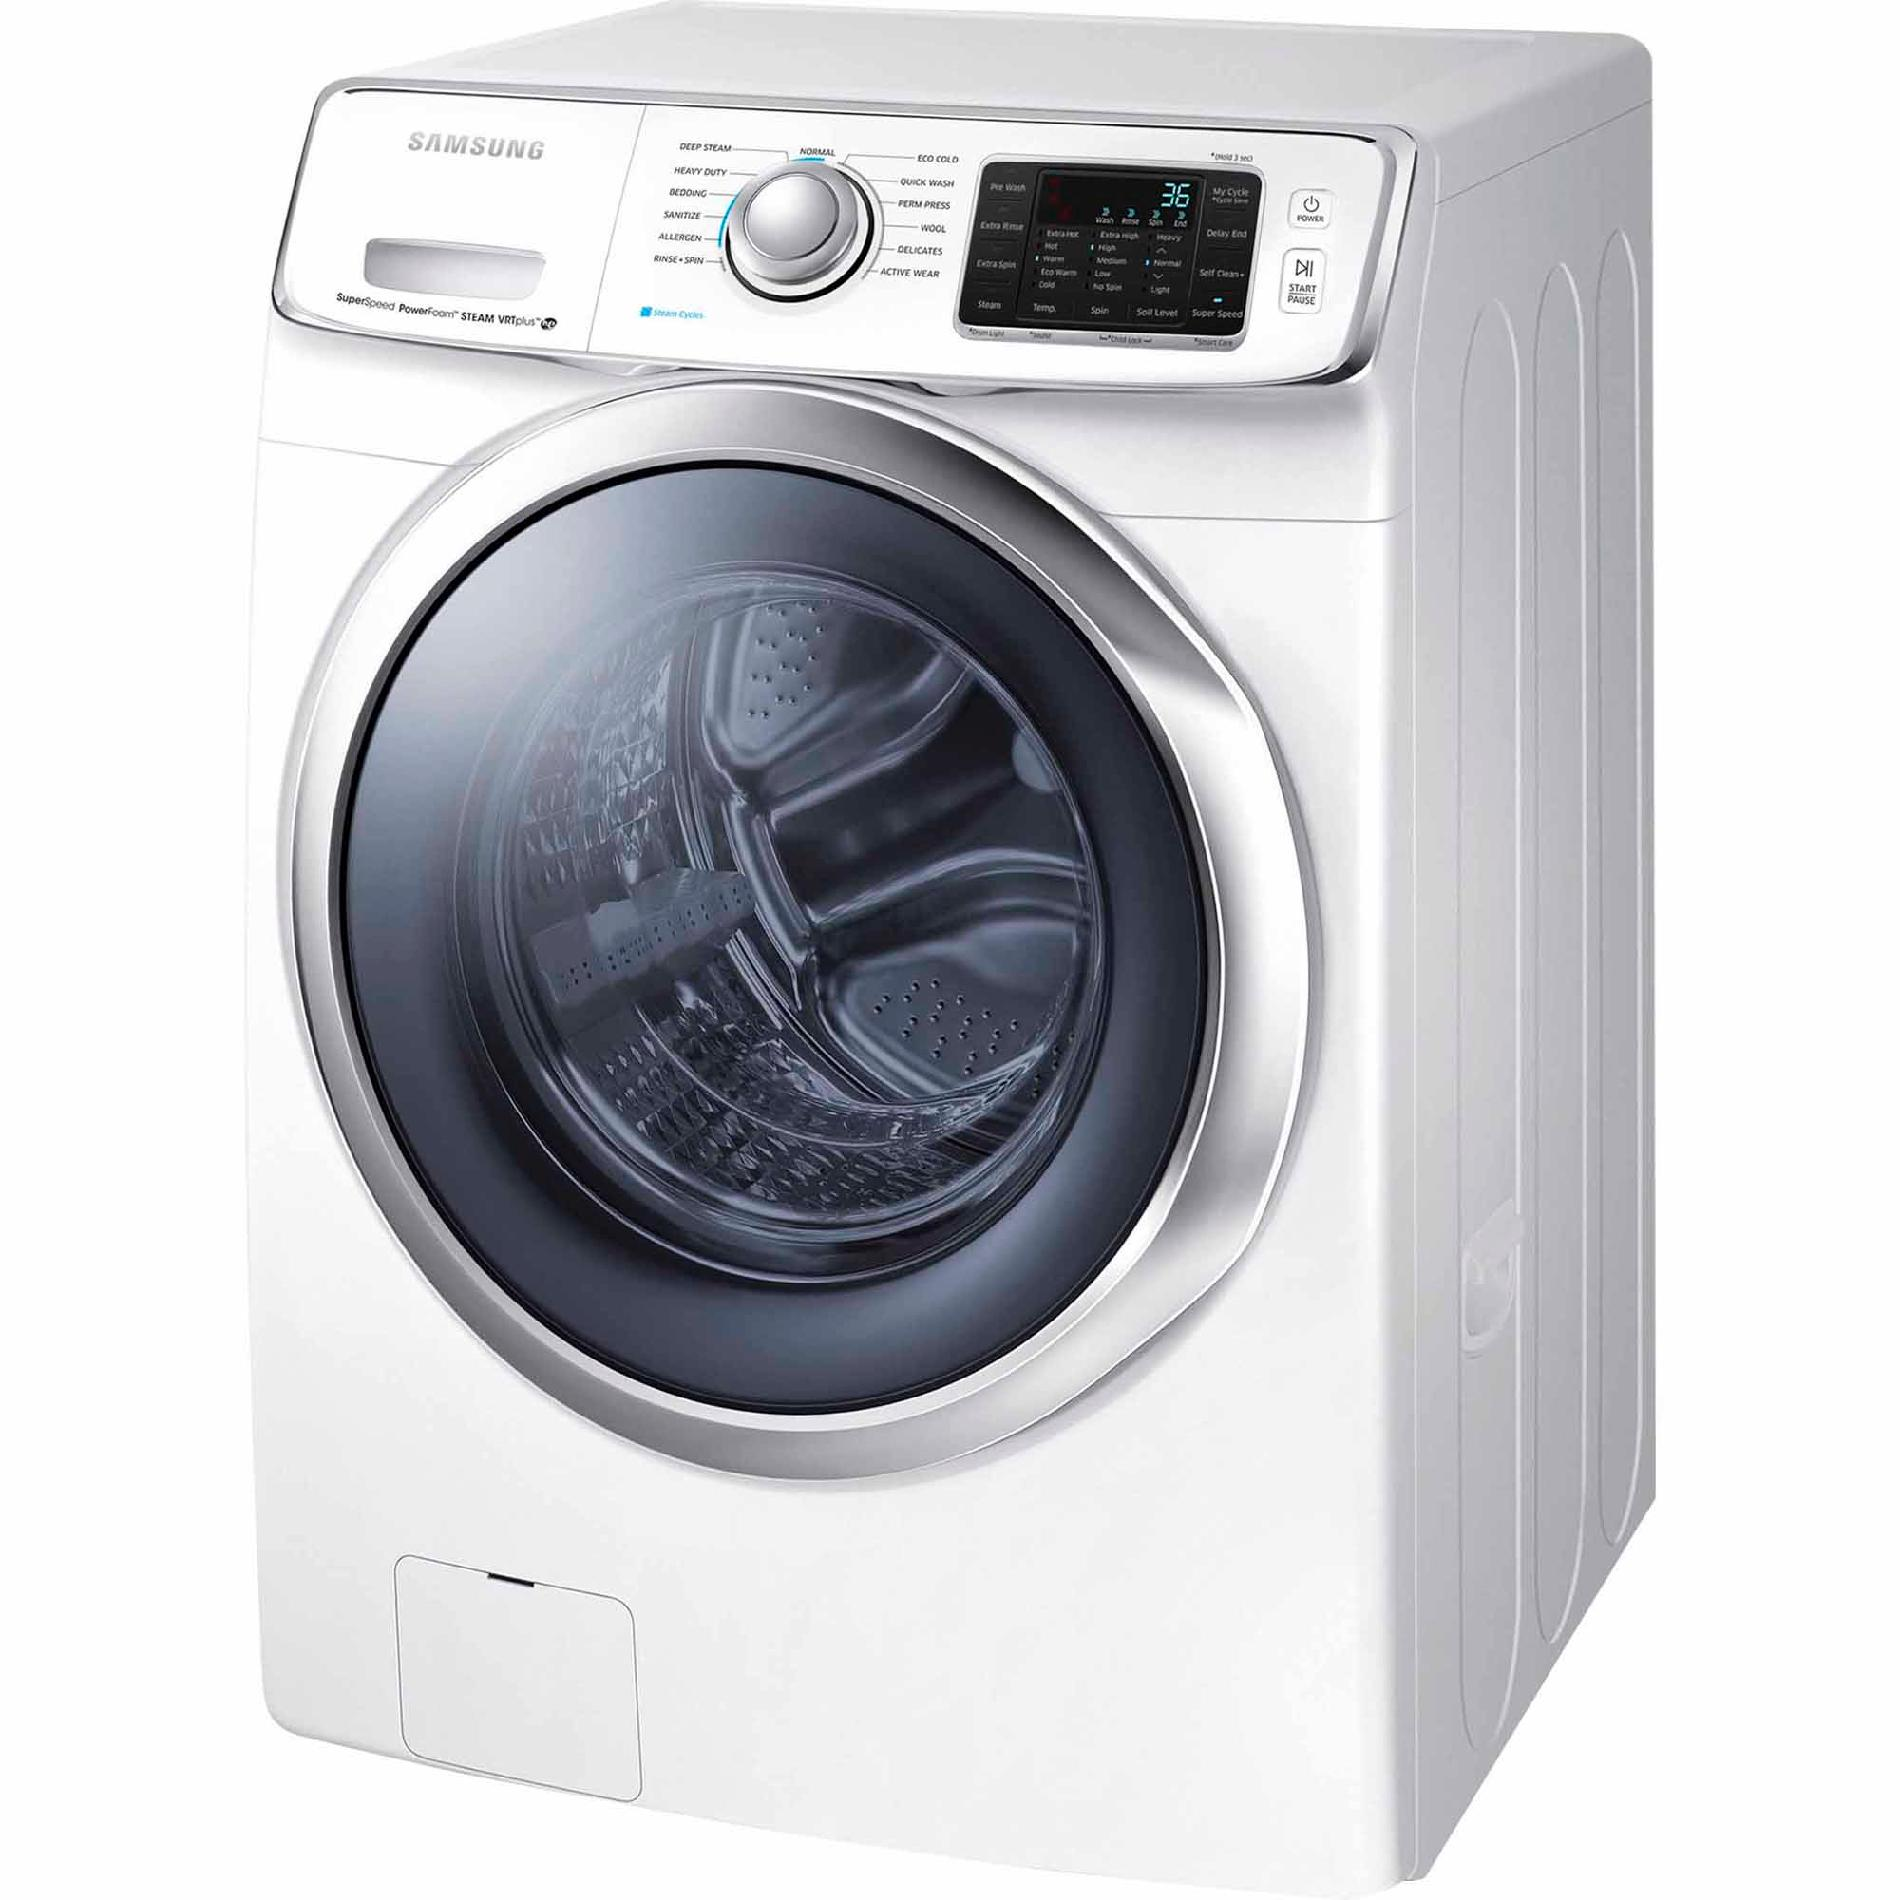 Samsung WF45H6300AW 4.5 cu. ft. Front-Load Washer - White